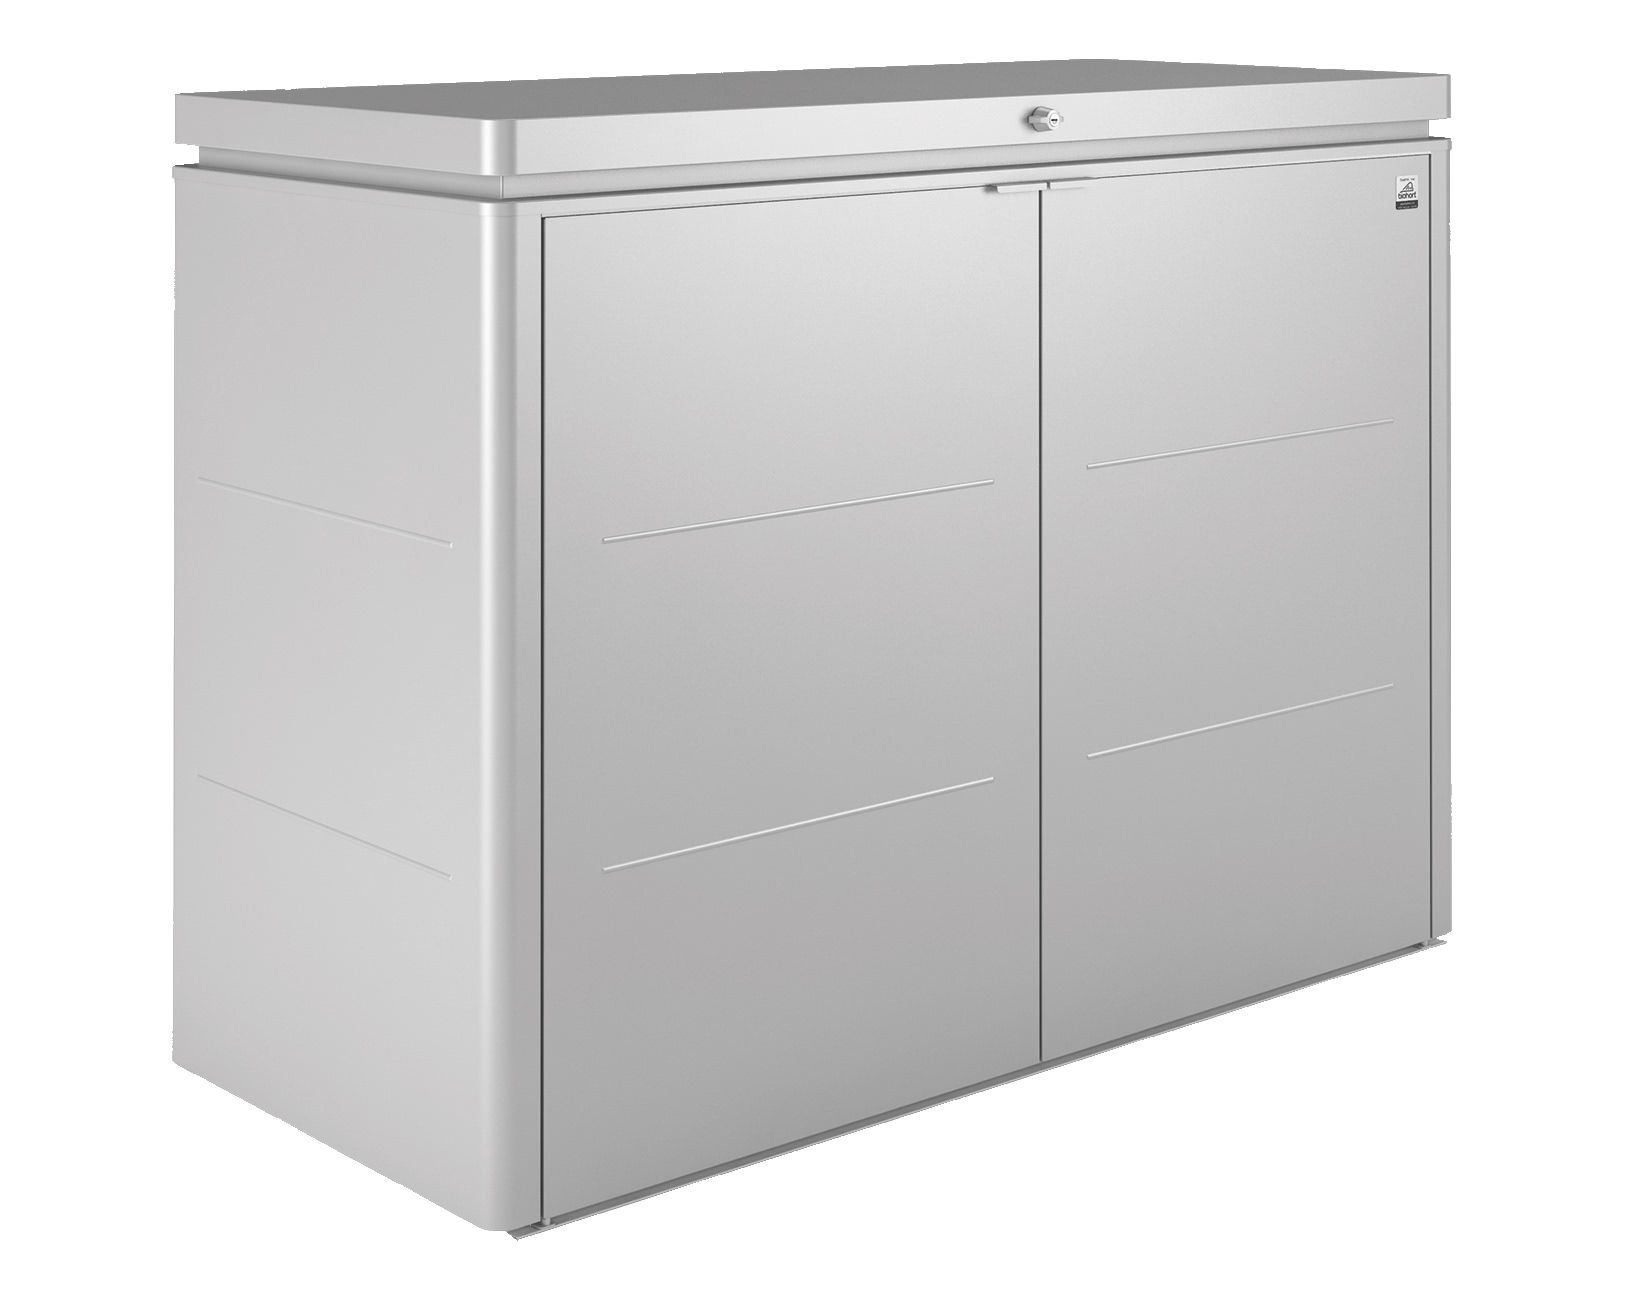 HighBoard Truhe, 160 x 70 x 118 cm